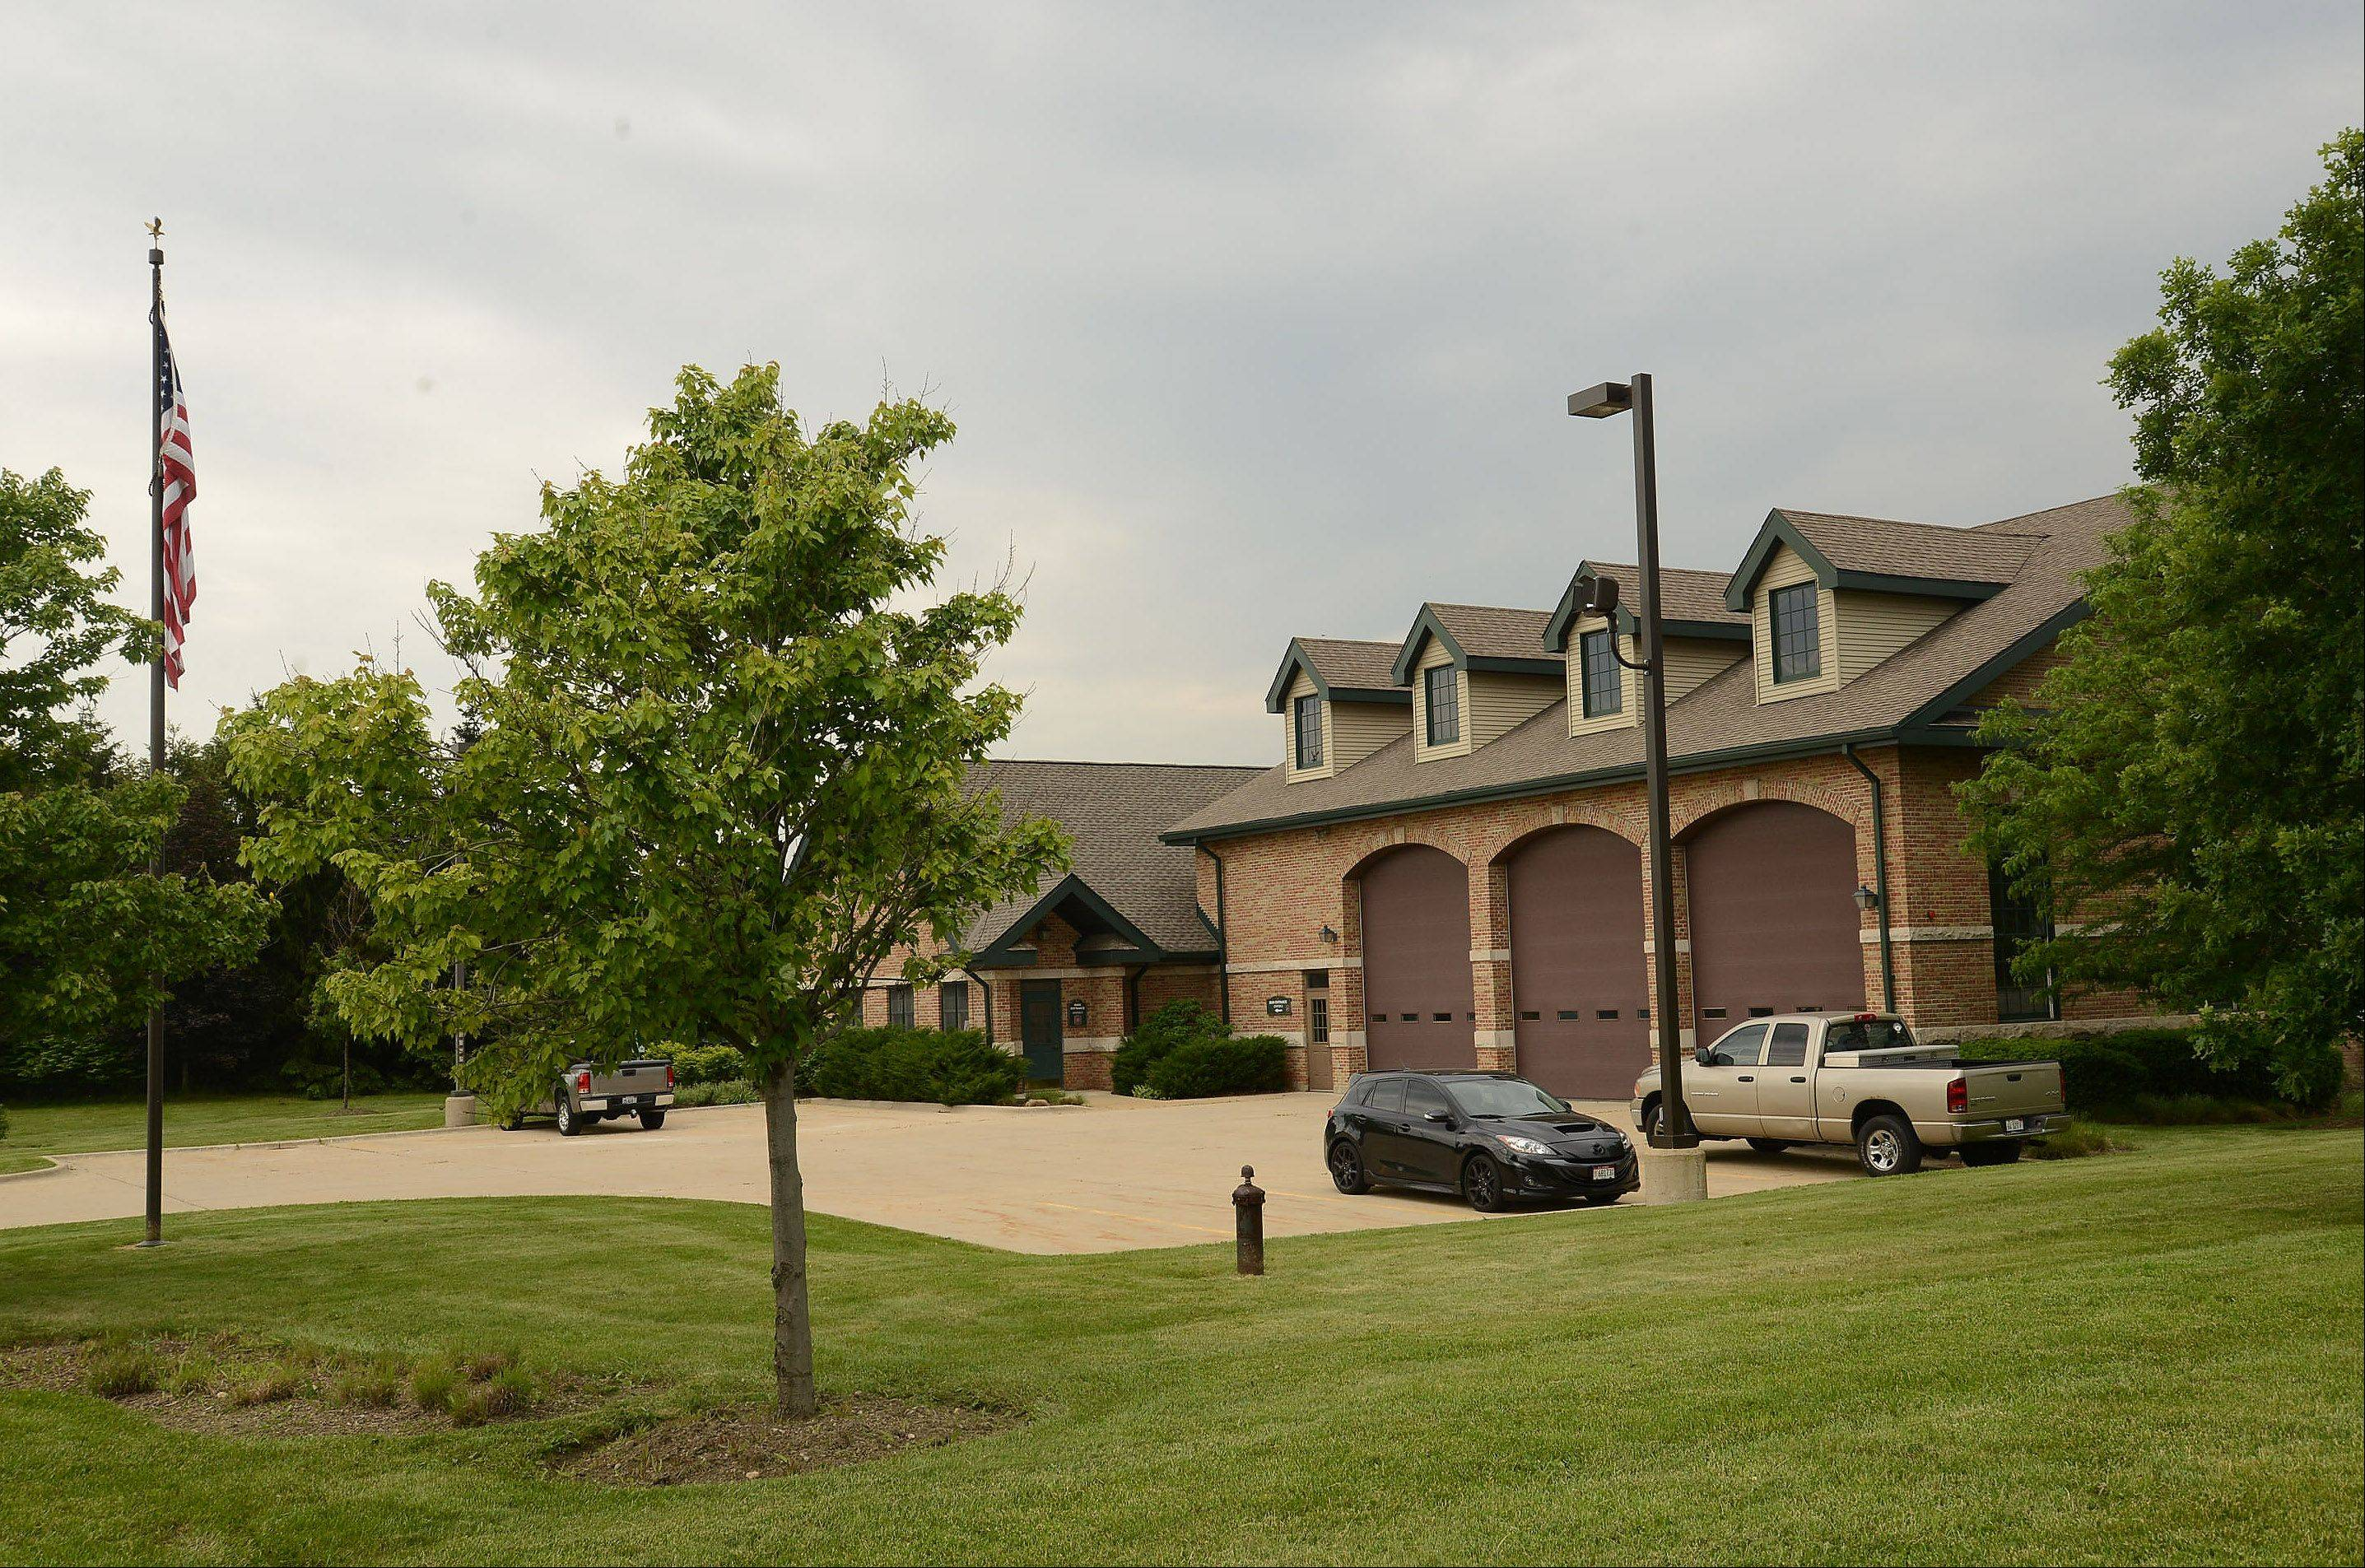 The Barrington Countryside Fire Protection District, which owns this fire station next to Barrington Hills village hall, is expected to make major decisions Monday regarding the end of its contract with the Barrington Fire Department.